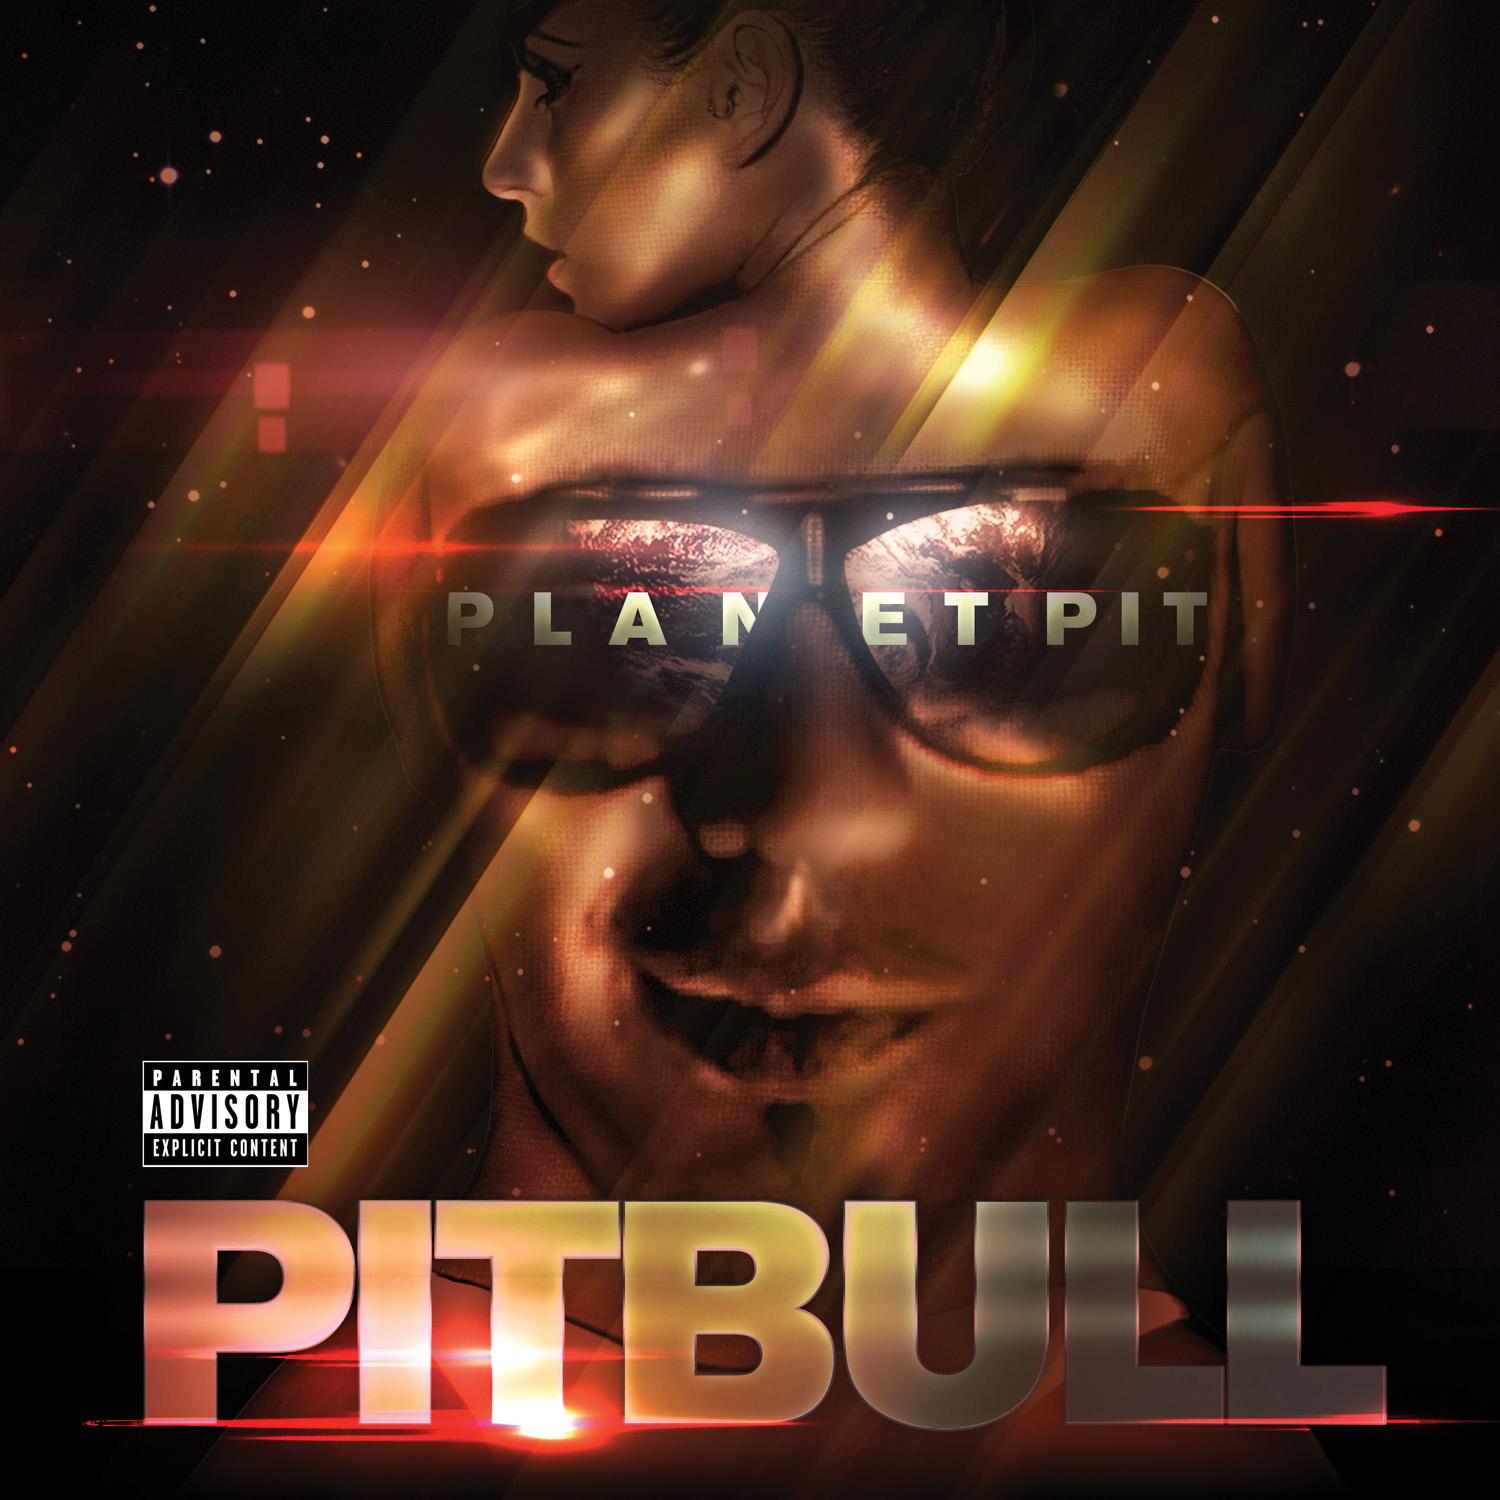 Pitbull - Planet Pit (Deluxe Edition) [Multi]